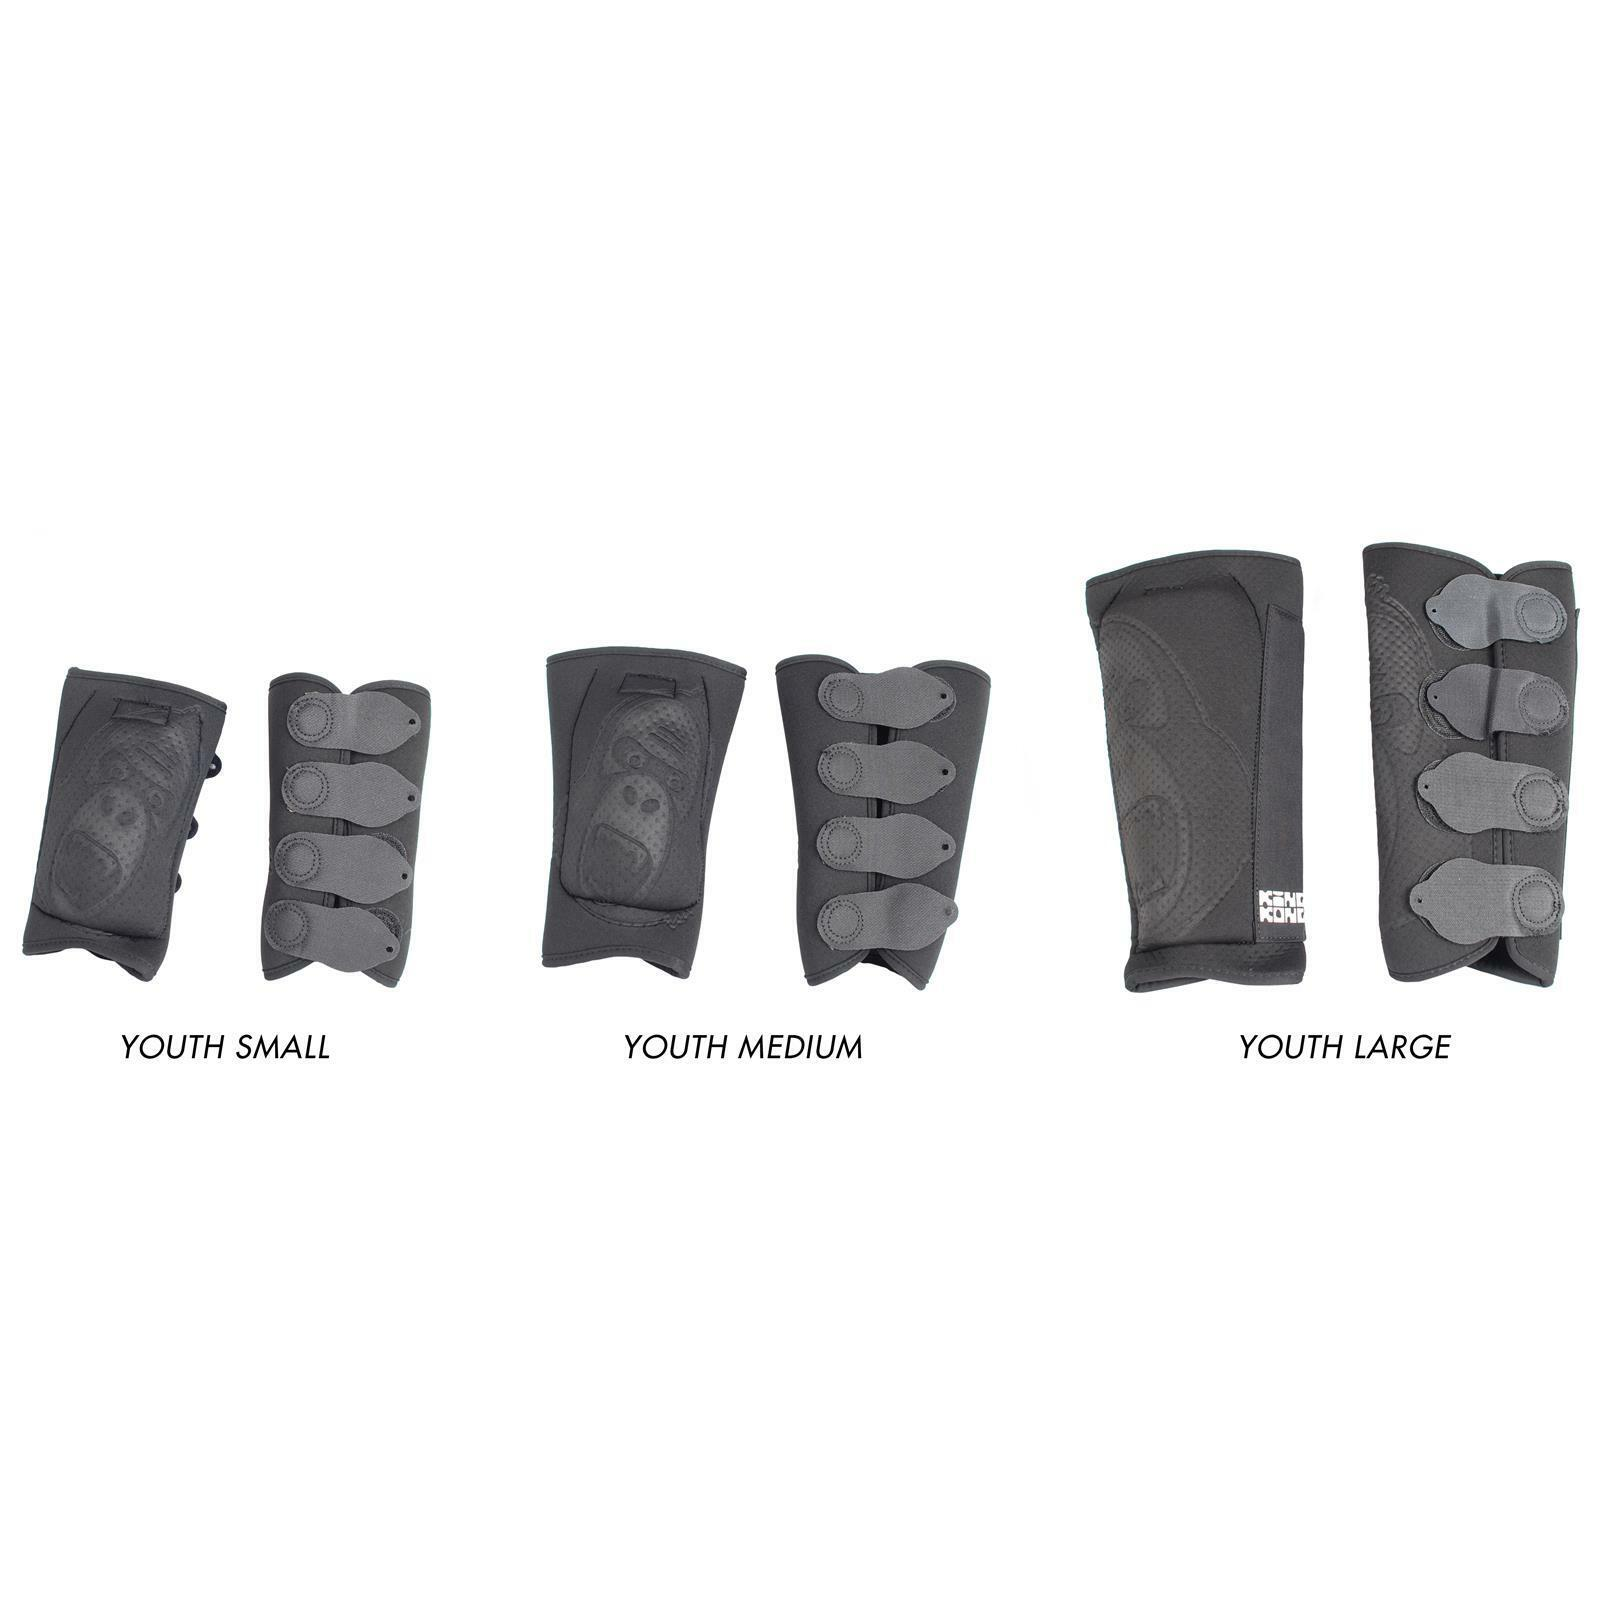 re Kong BMX djungle Gioventù Shin Pad Coppia Nero